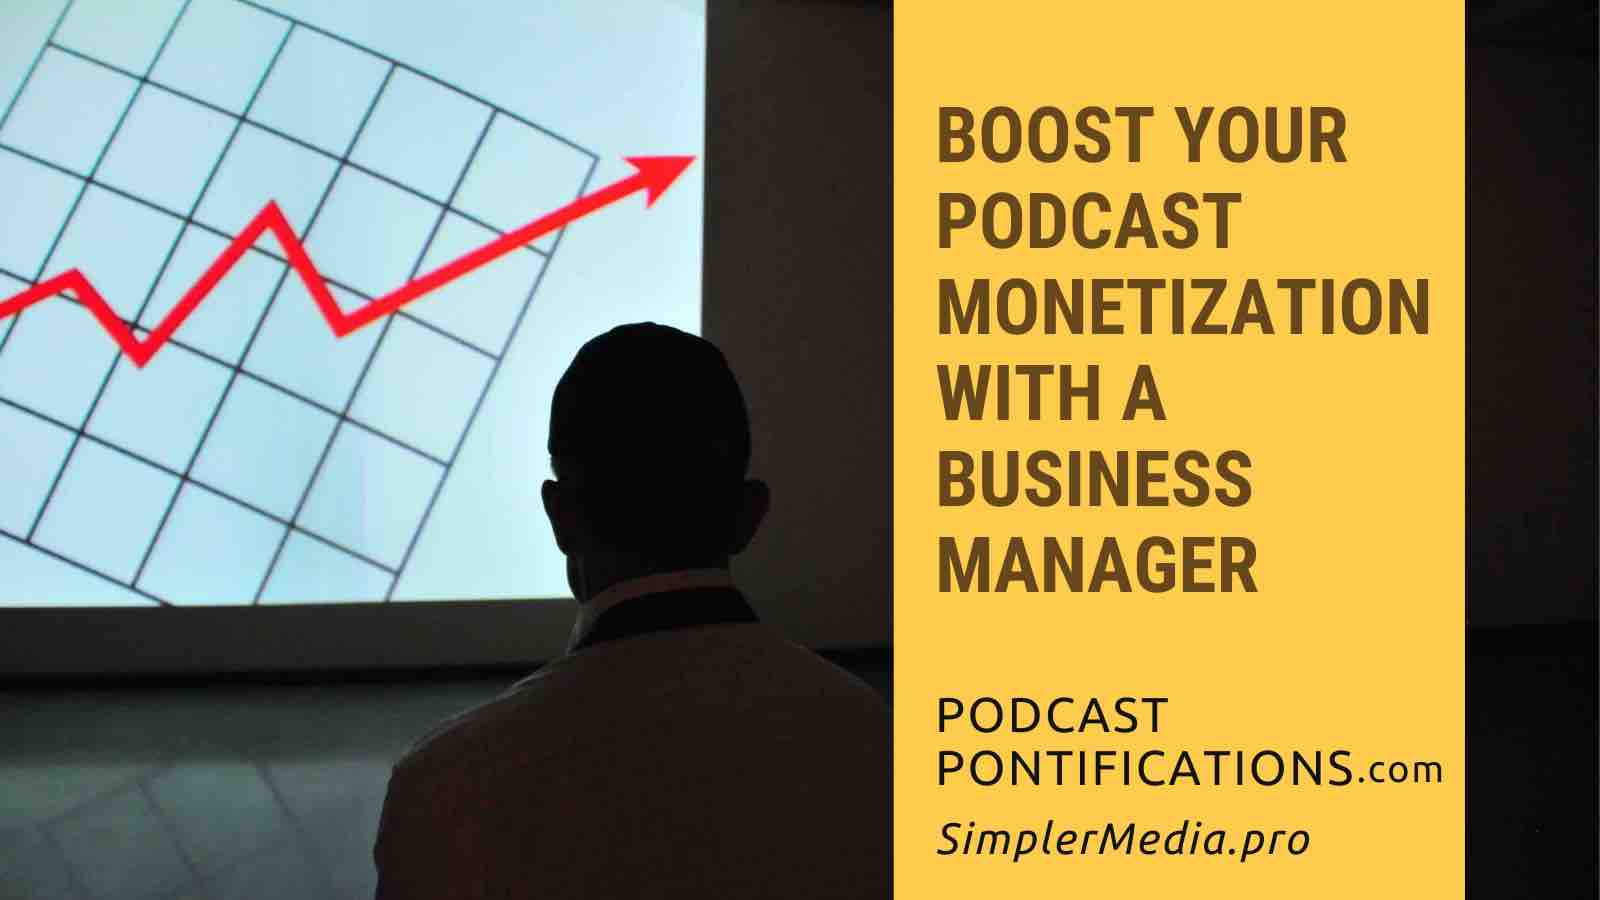 Boost Your Podcast Monetization With A Business Manager